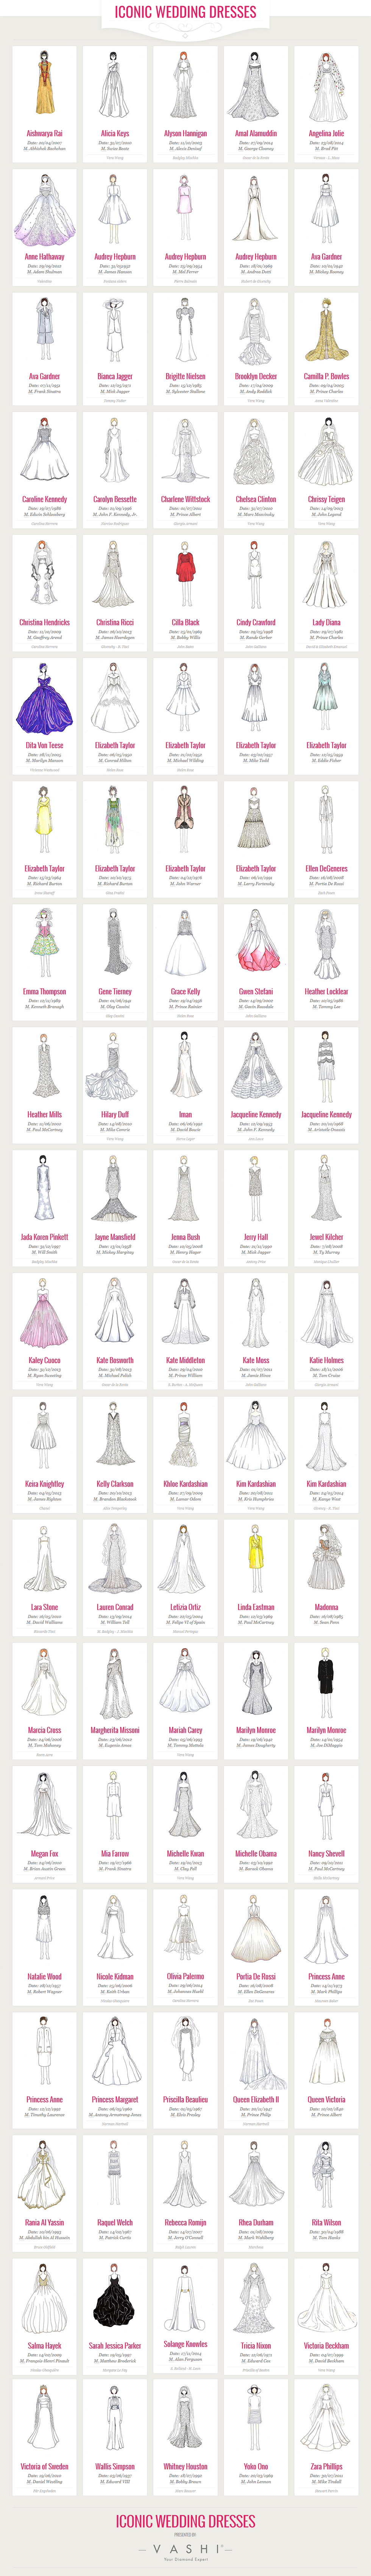 100 iconic wedding dresses.